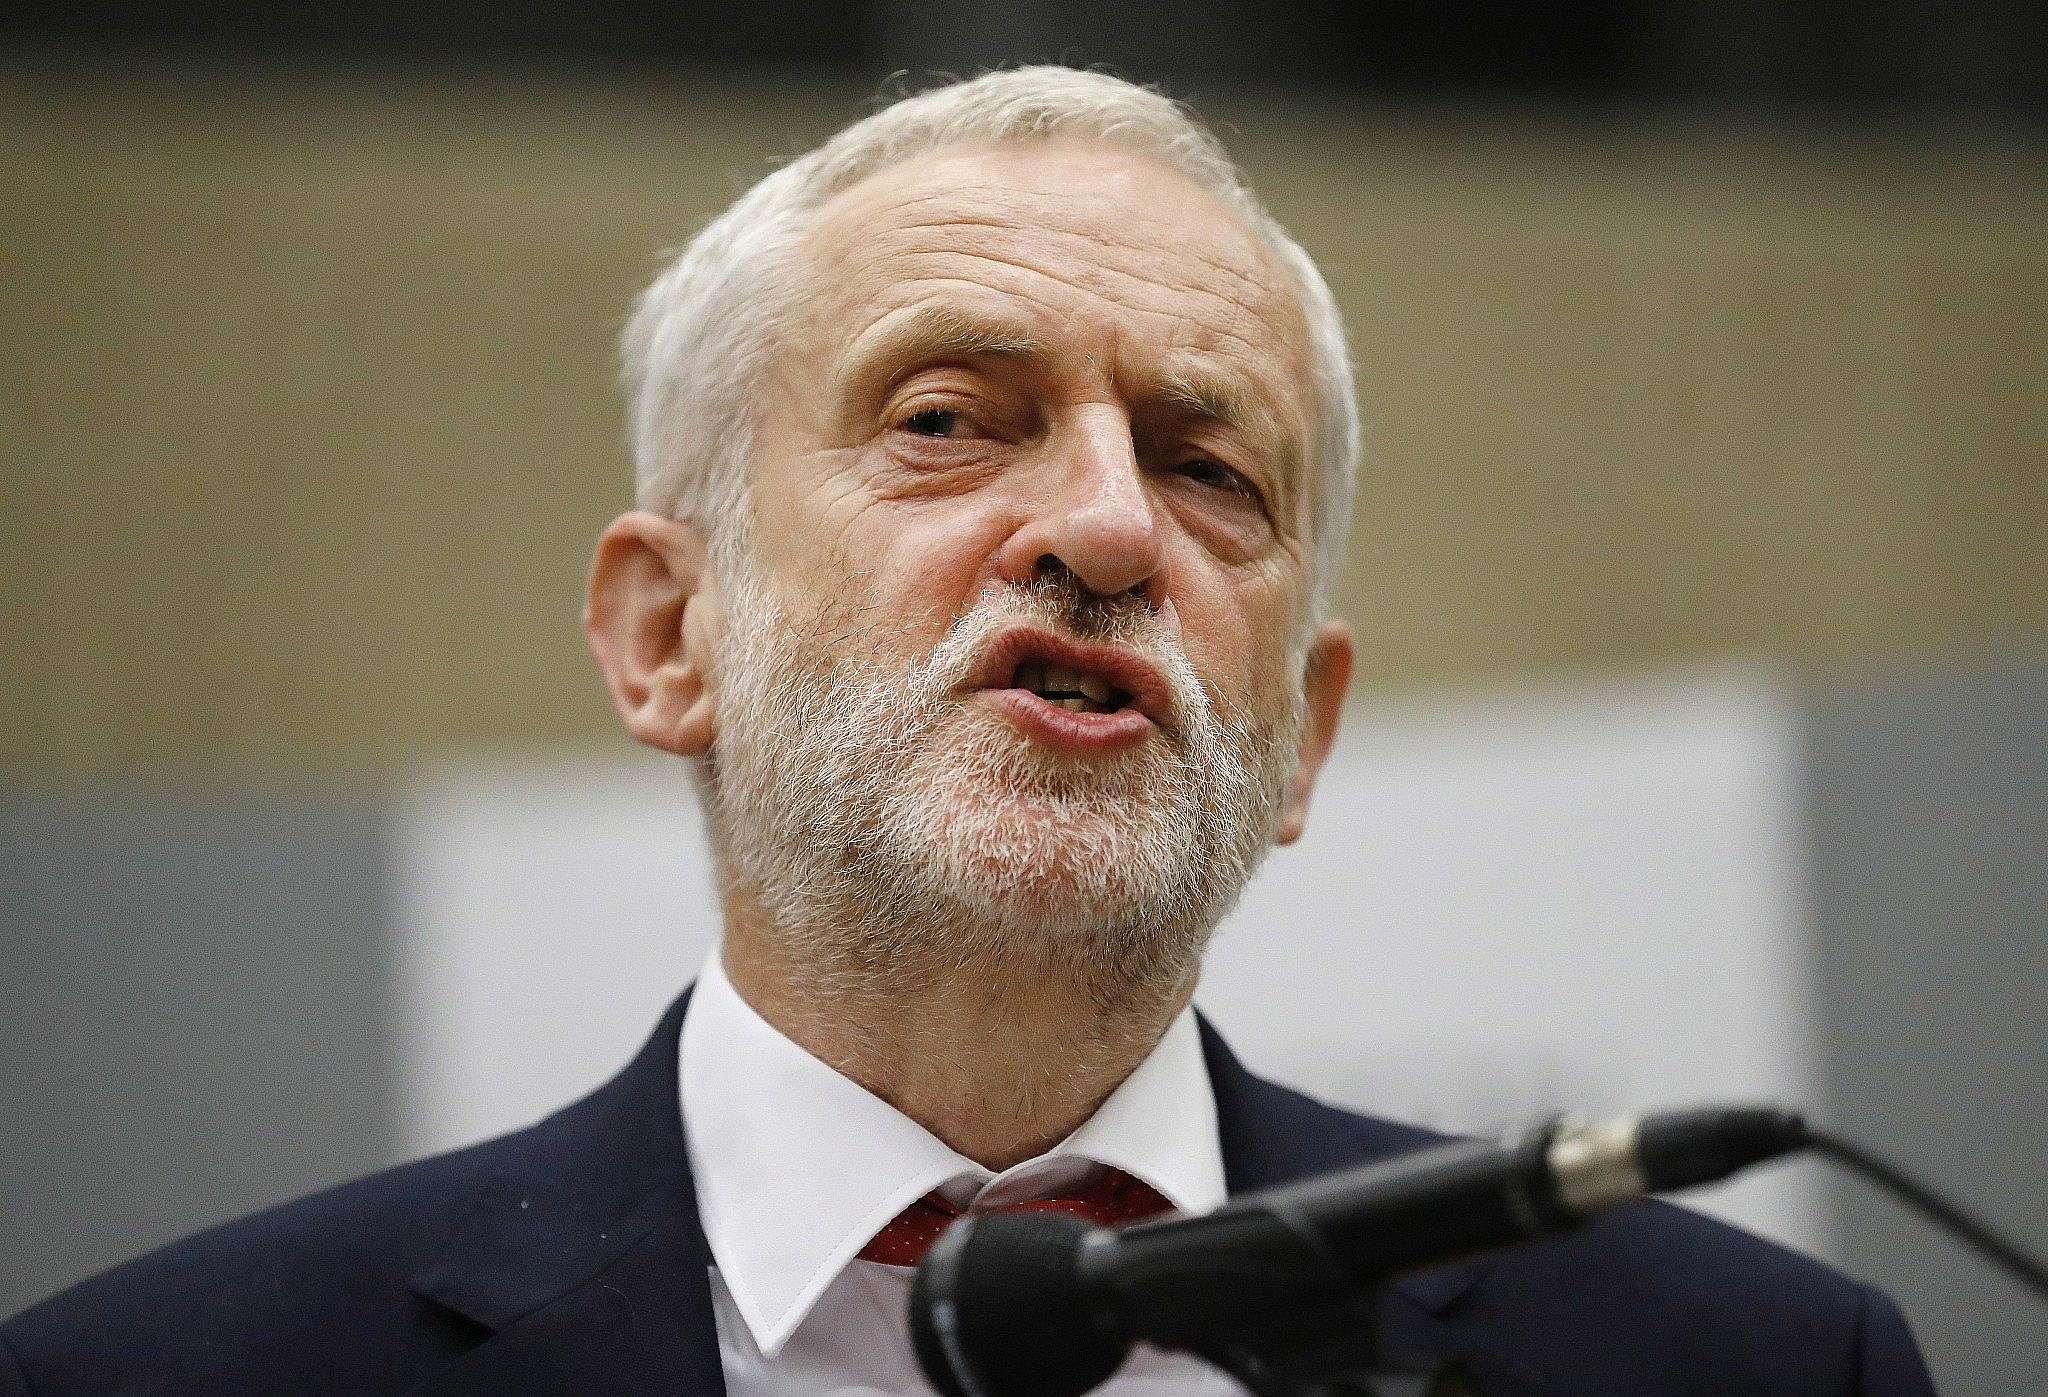 Labour leader Jeremy Corbyn attends left-wing Jewish group's event